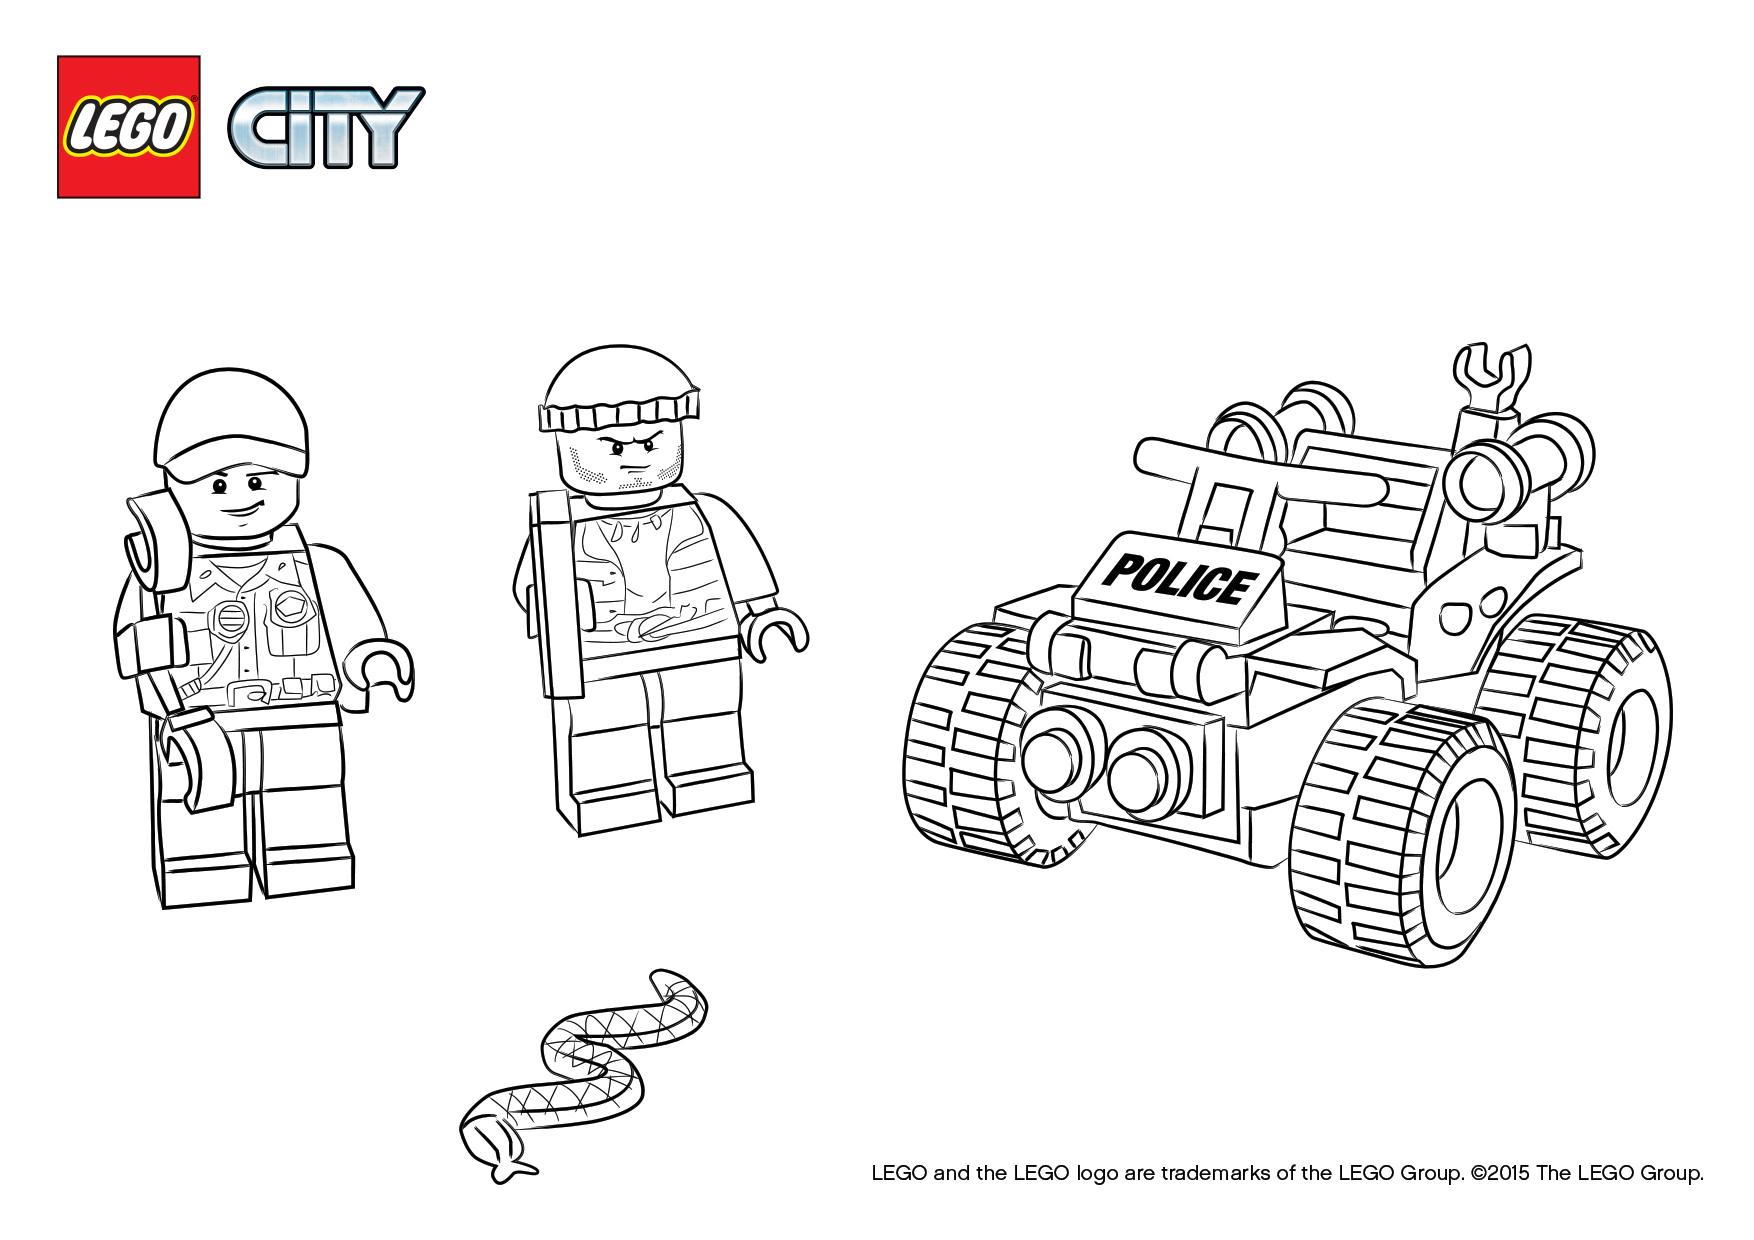 Lego City Police Officers Coloring Pages